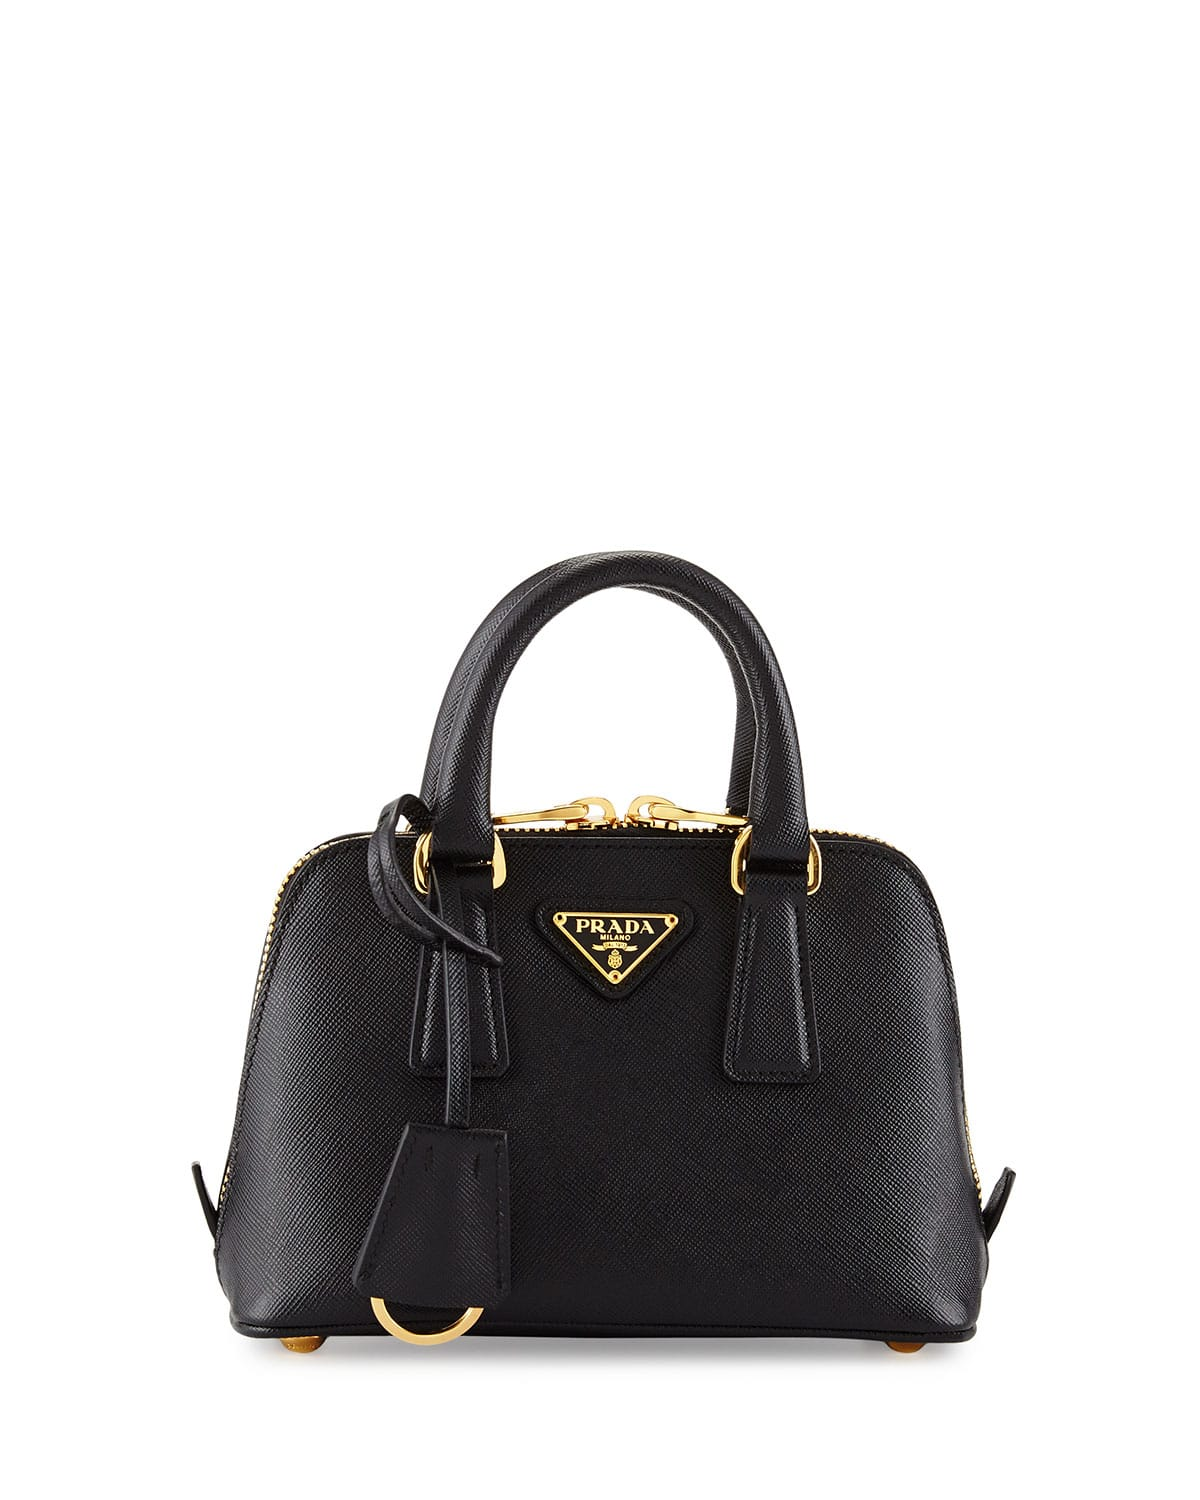 Prada Black Saffiano Mini Promenade Bag